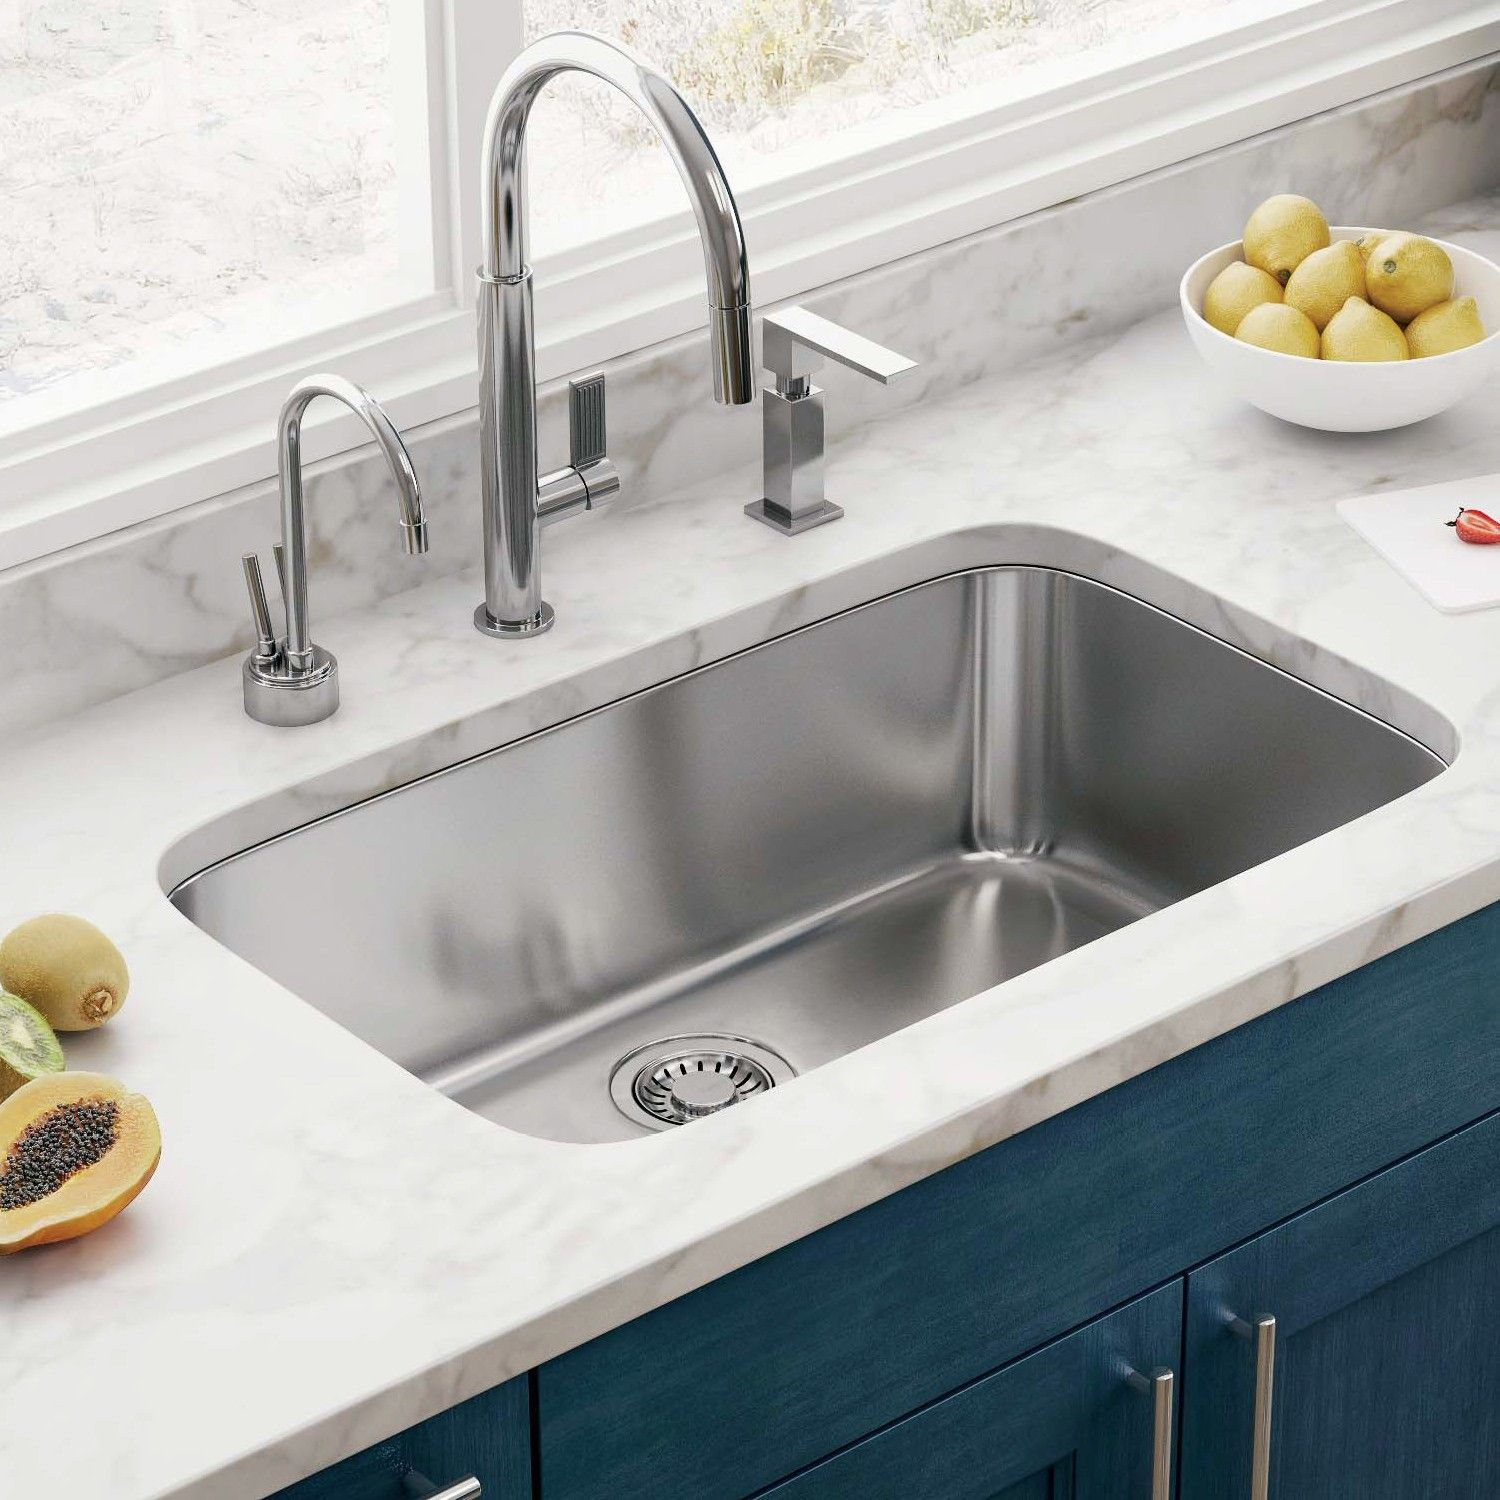 Single Sink Kitchen Specialty Stores Pin By Ybath On Modern Sinks In 2019 Pinterest The Kubus Bowl Undermount Is A Twist Classic